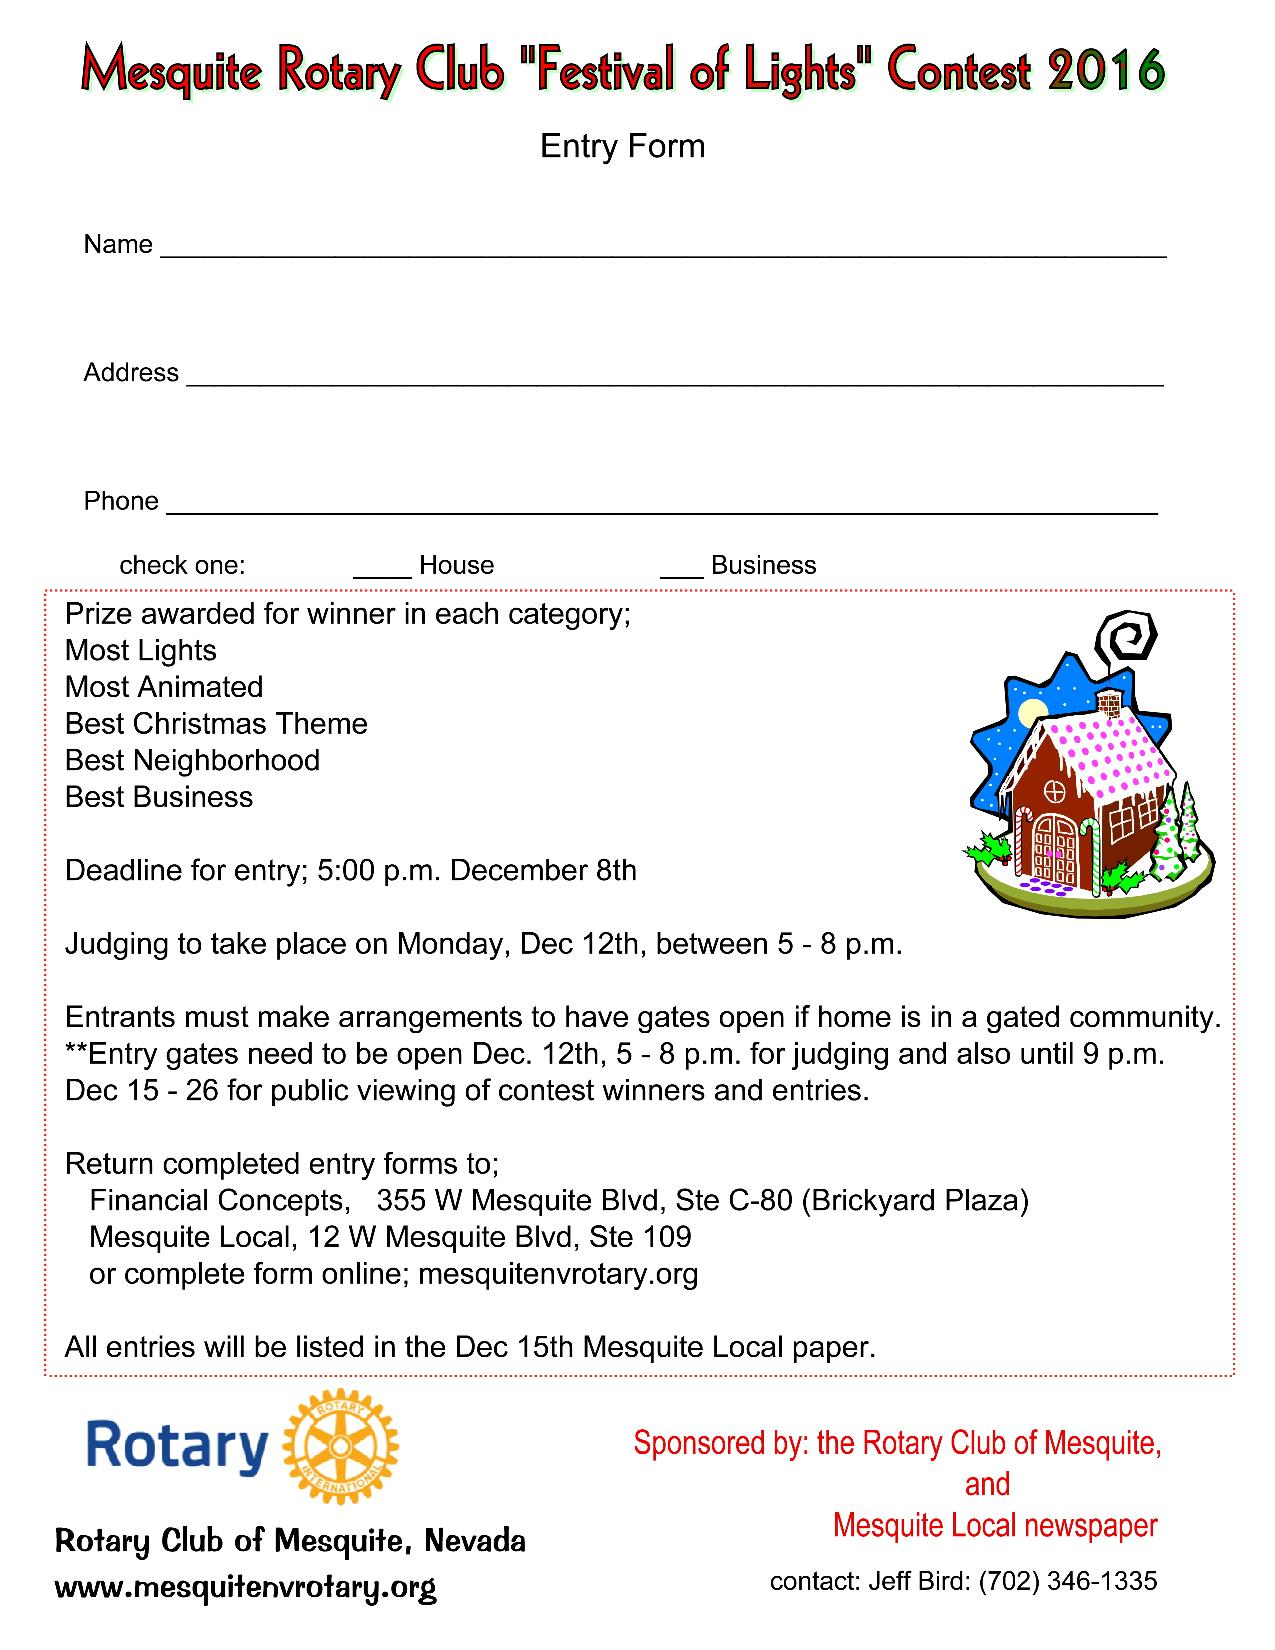 rotary-festival-of-lights-contest-entry-form-2016-page-001